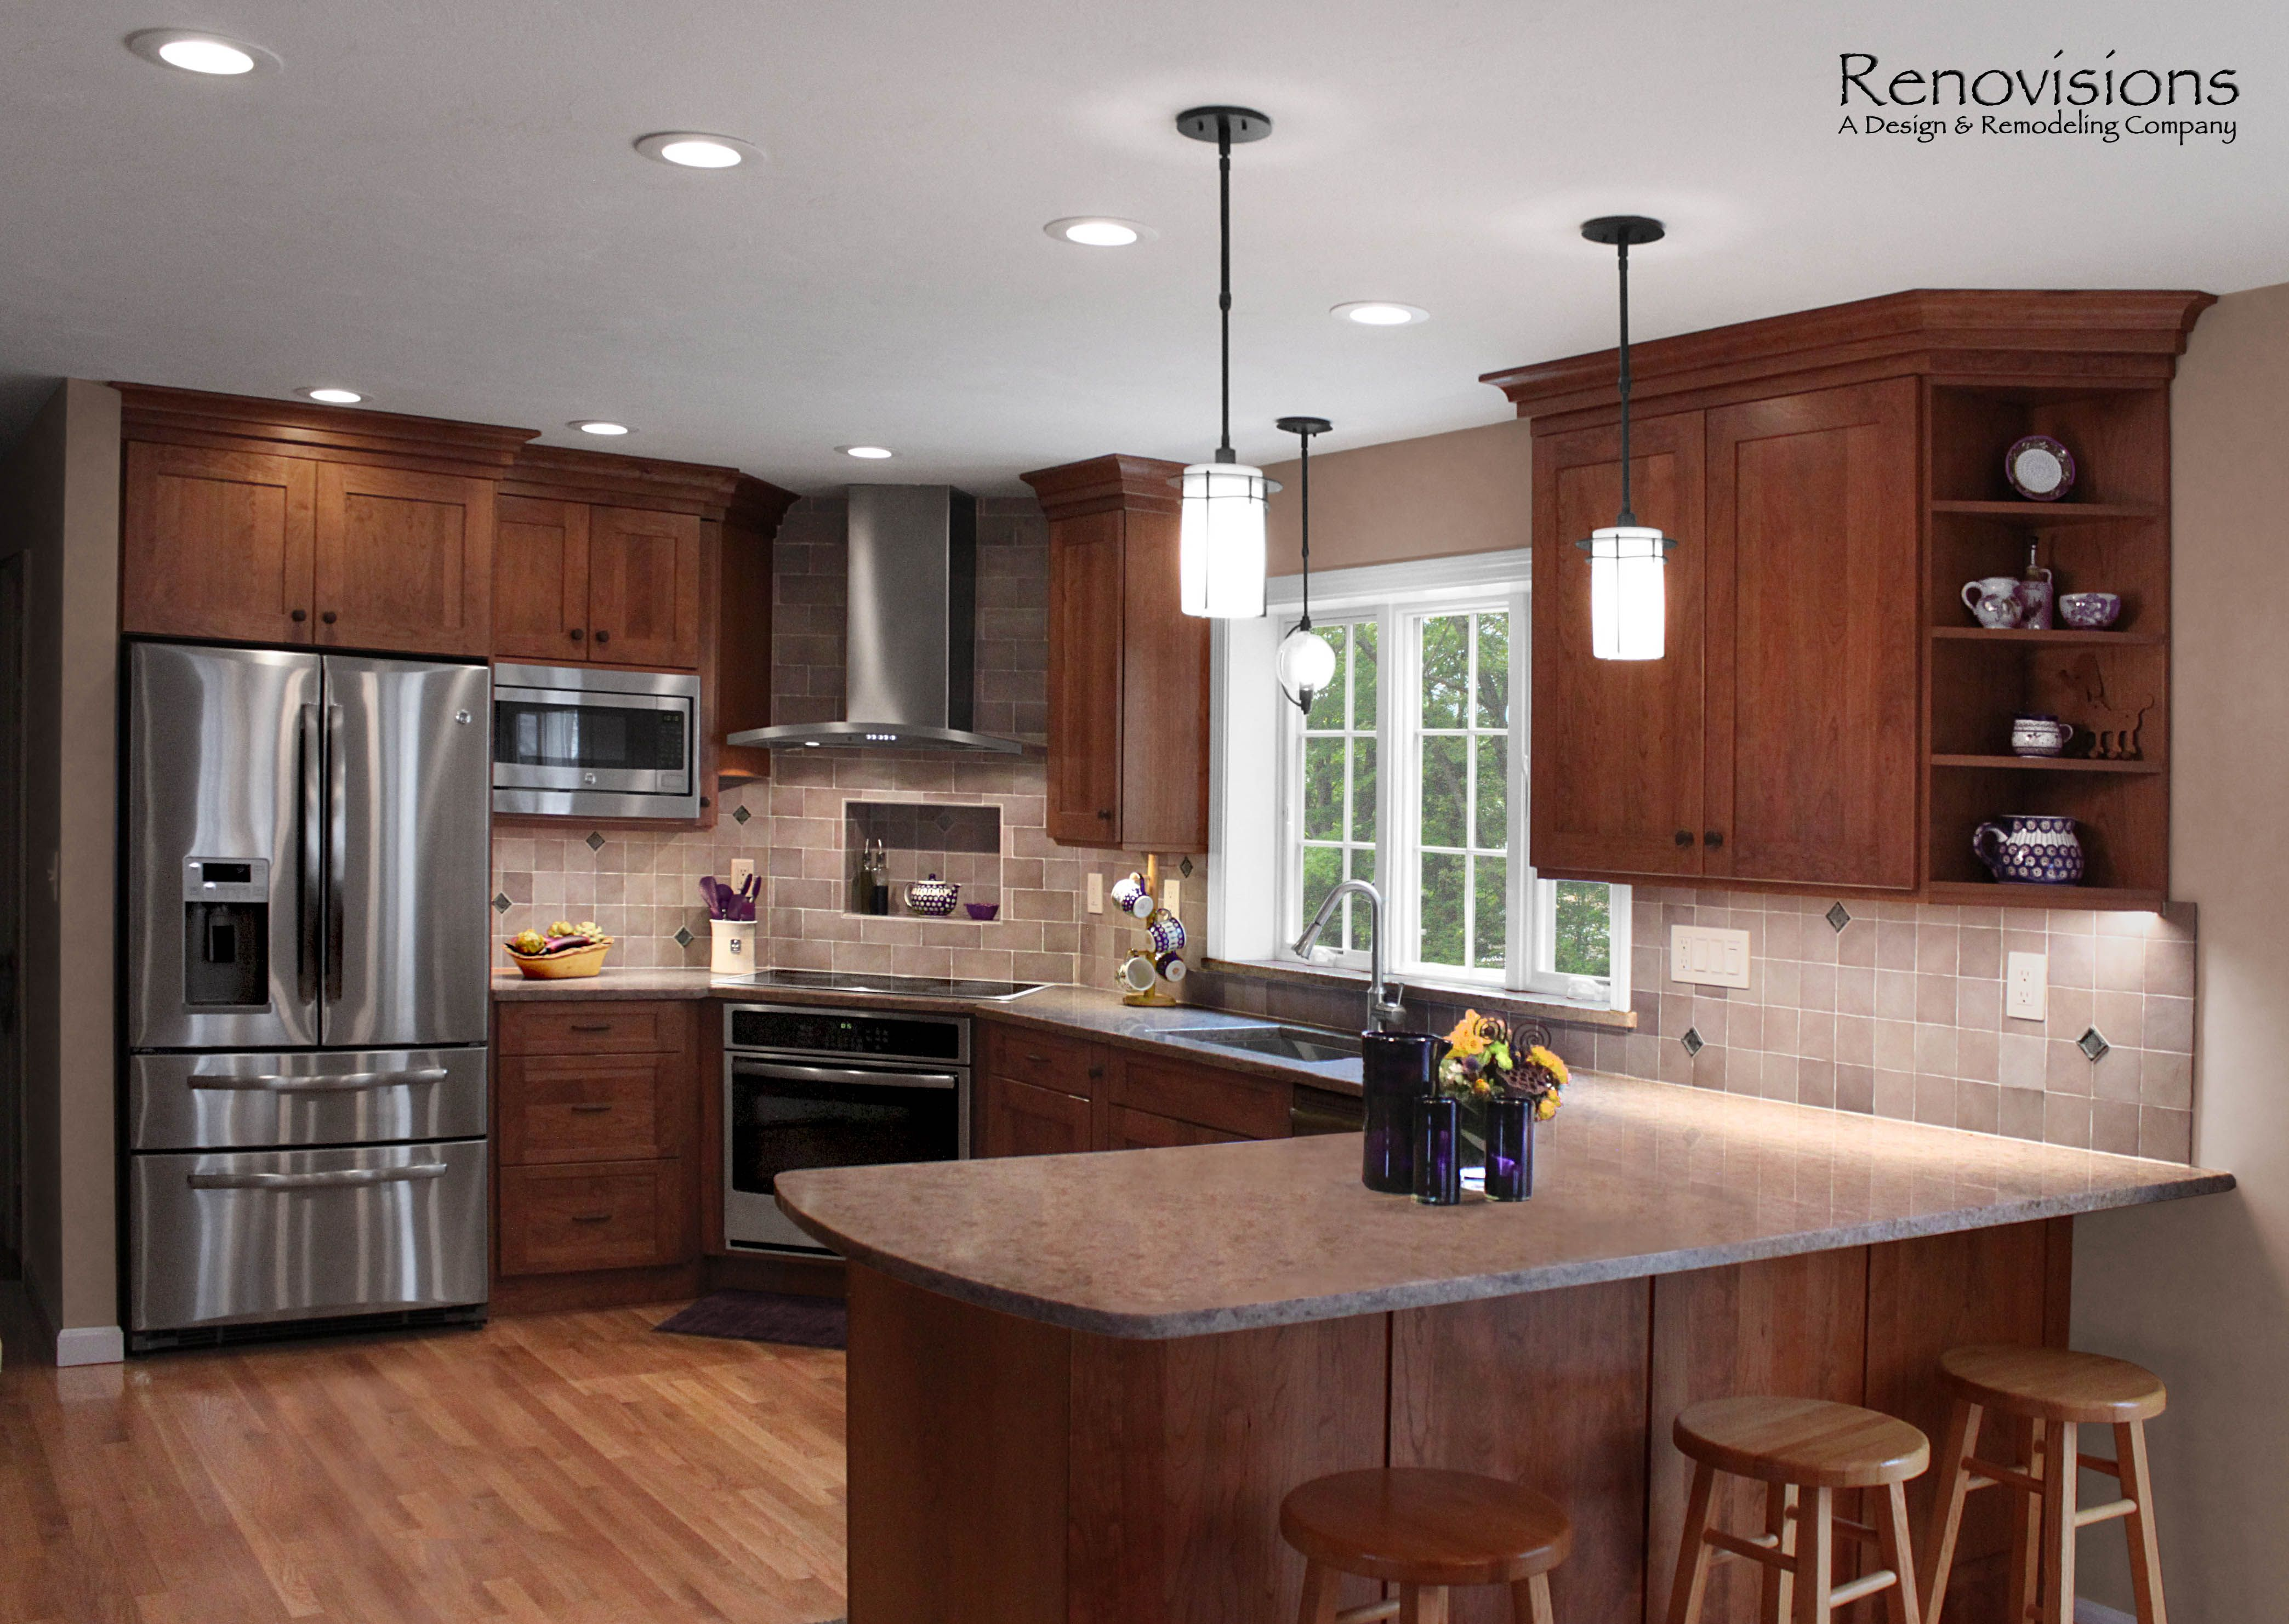 Kitchen Remodel By Renovisions Induction Cooktop